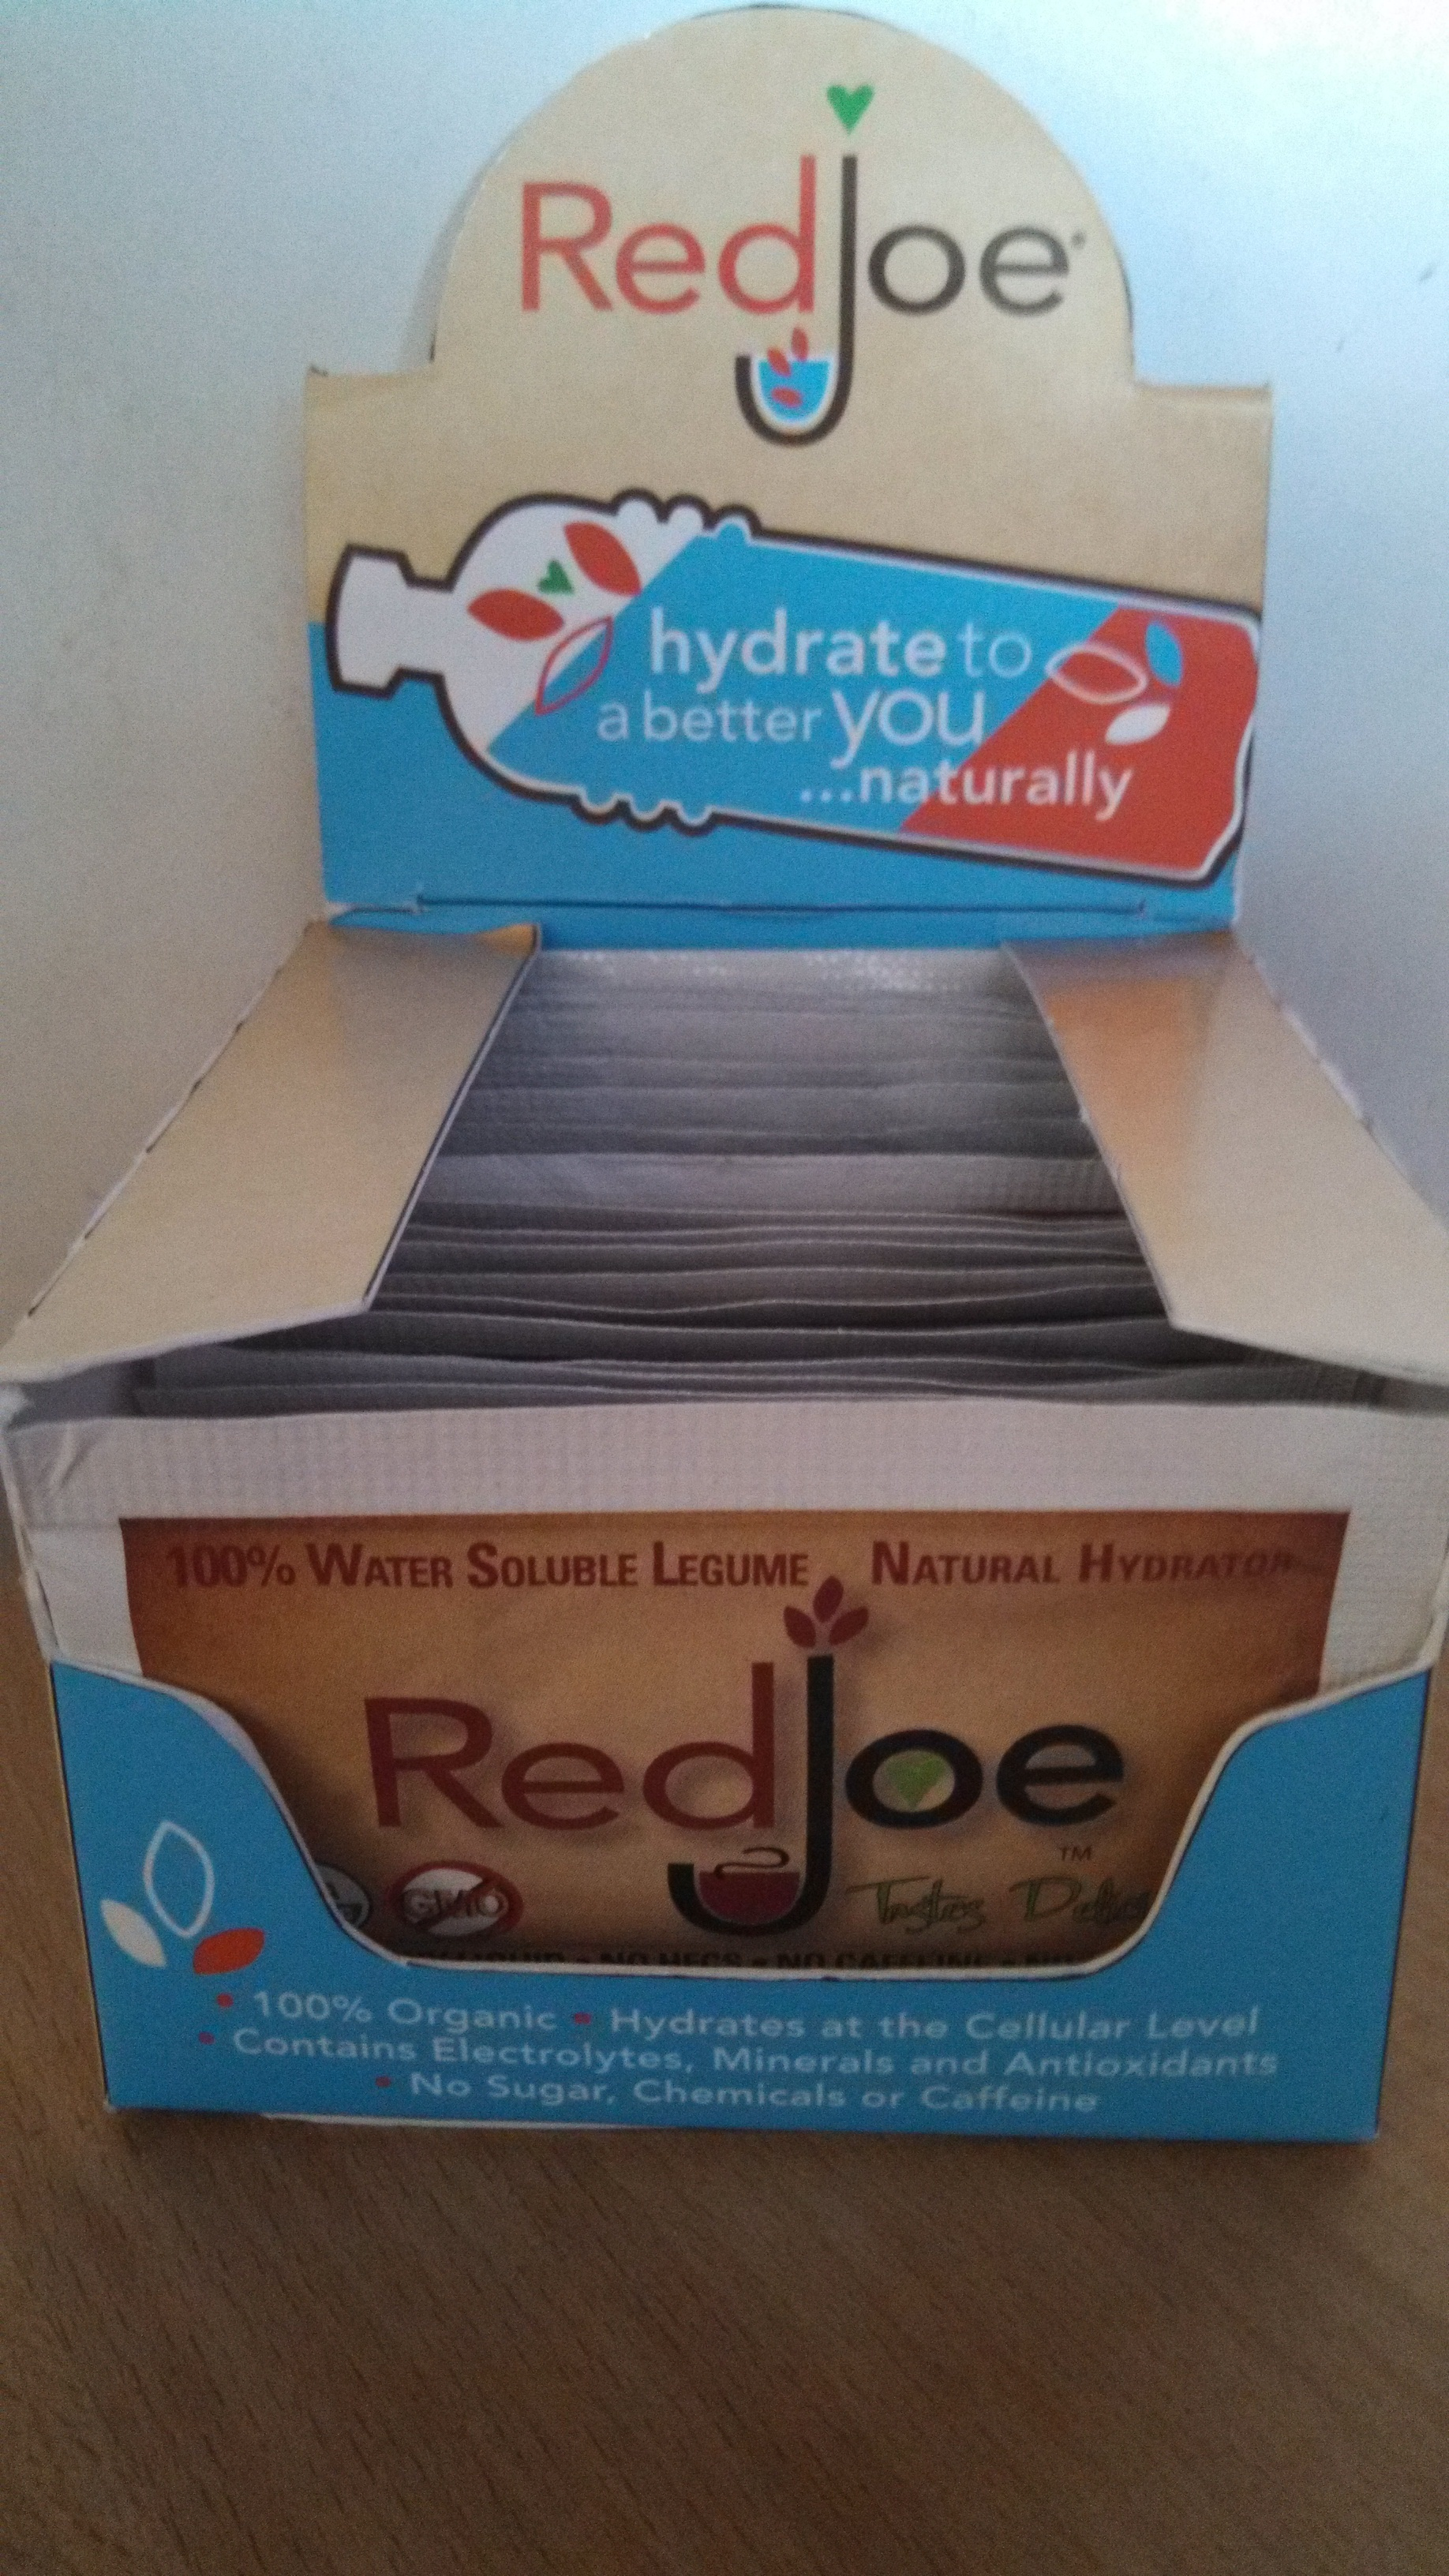 30 Count Box of RedJoe Single Serve Packets